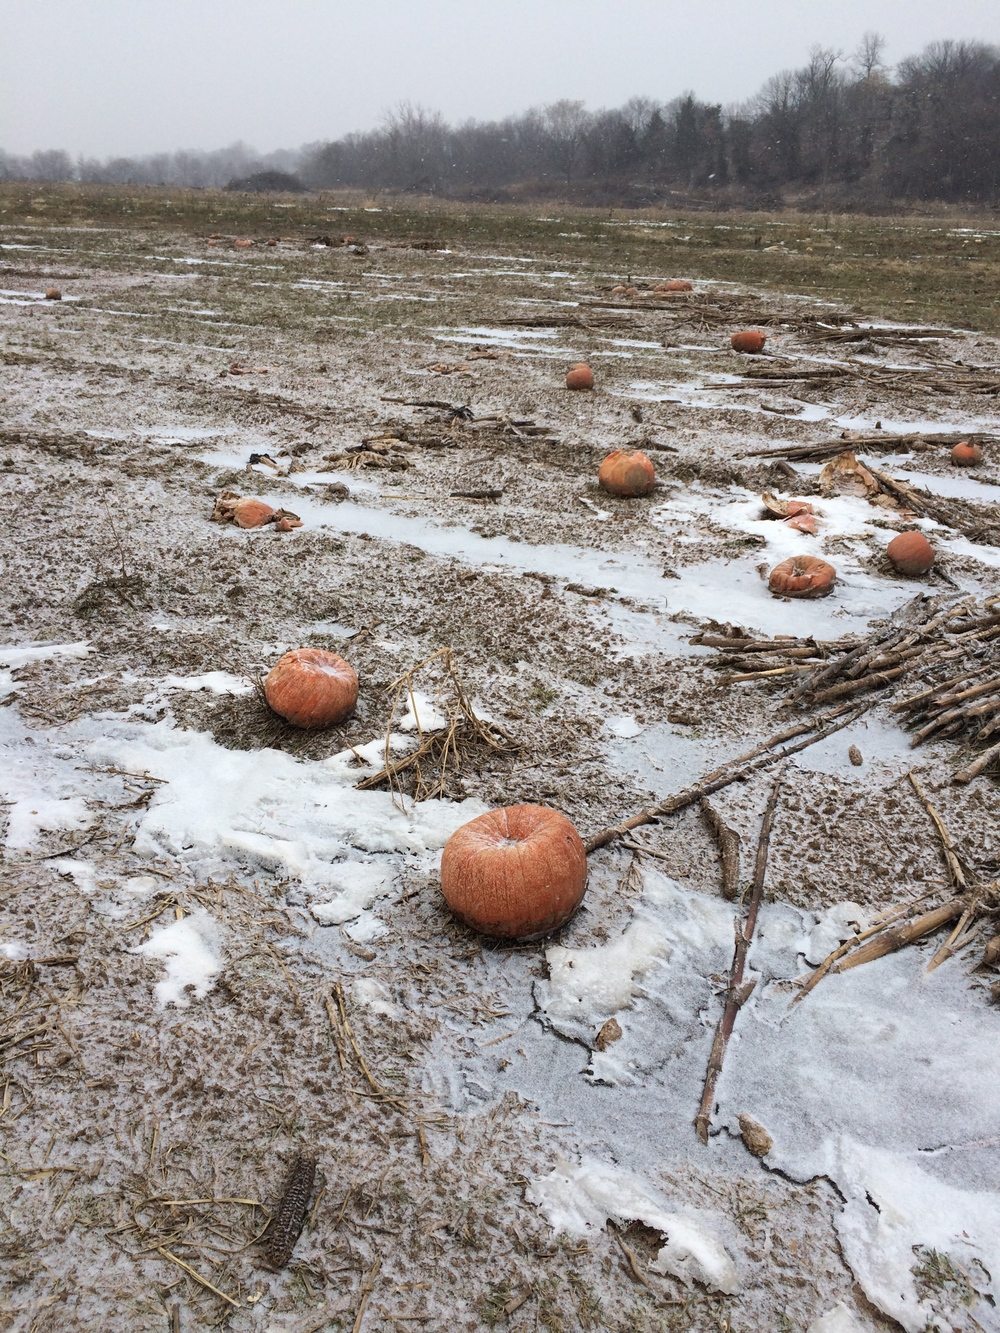 A few rotten pumpkins, fertilizing the fields for next year